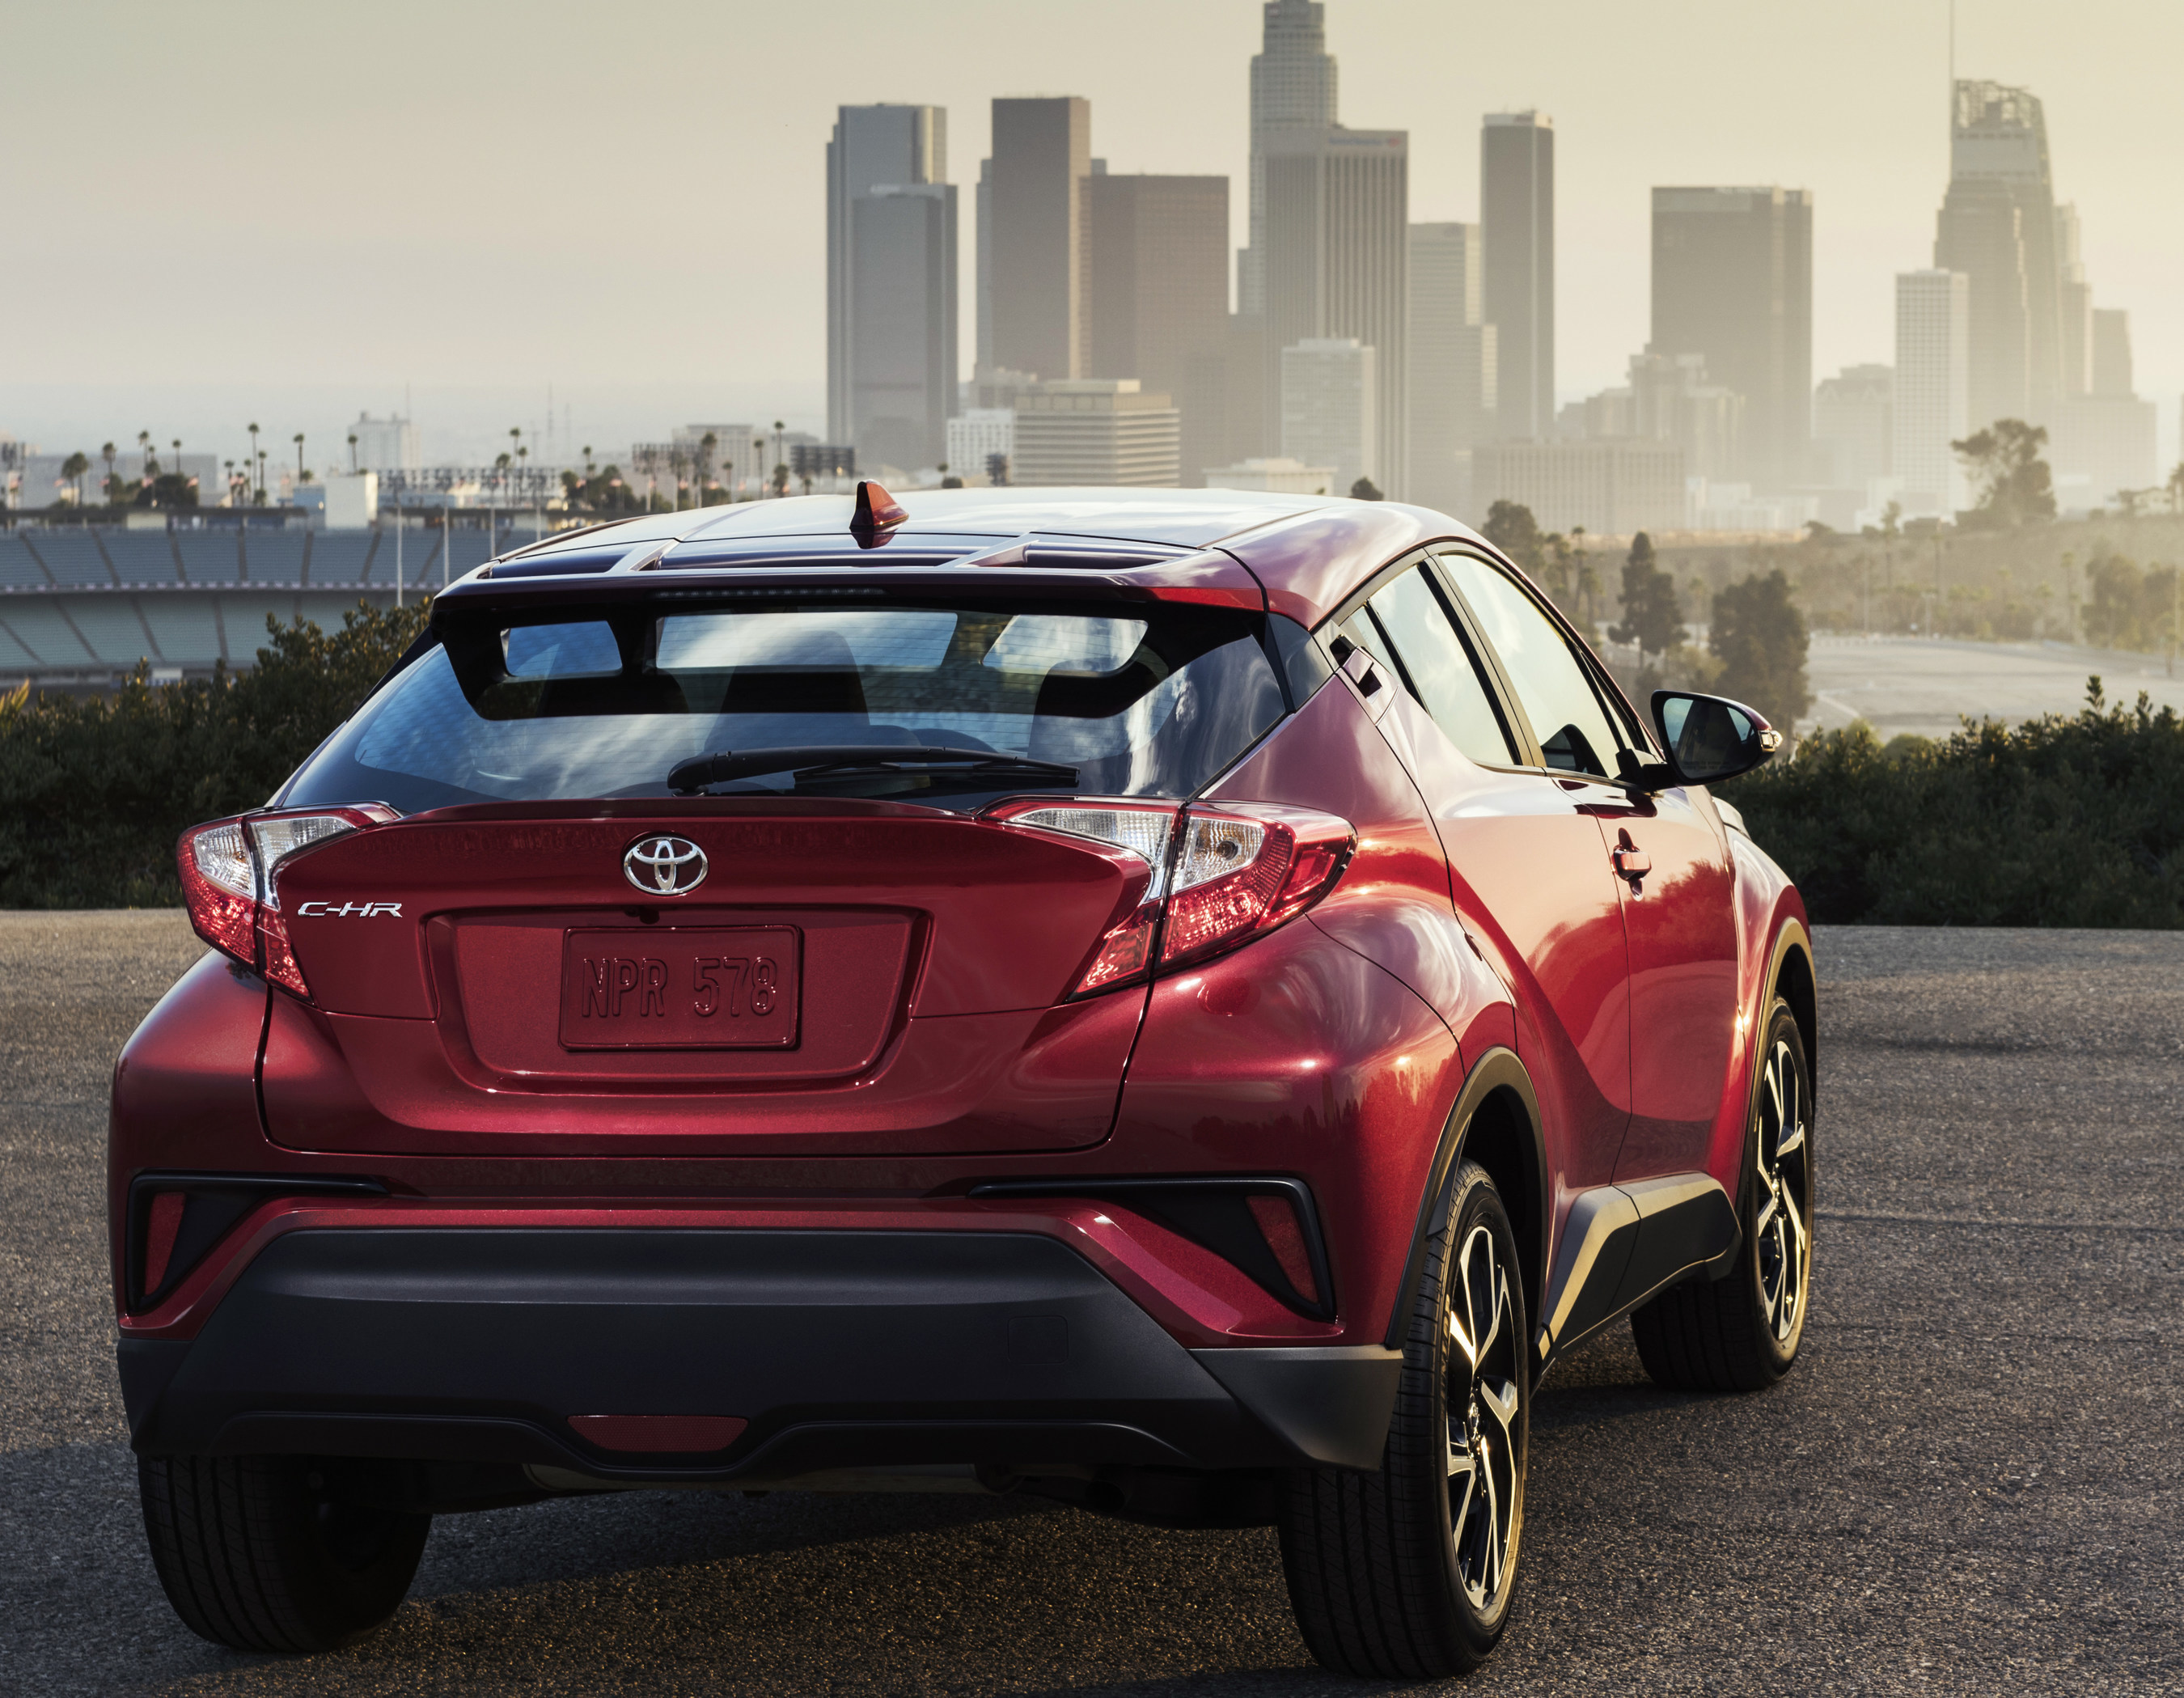 The all new Toyota C-HR was revealed at the LA Auto Show on Thursday, November 17, ushering in a new chapter of Toyota style, versatility and performance.